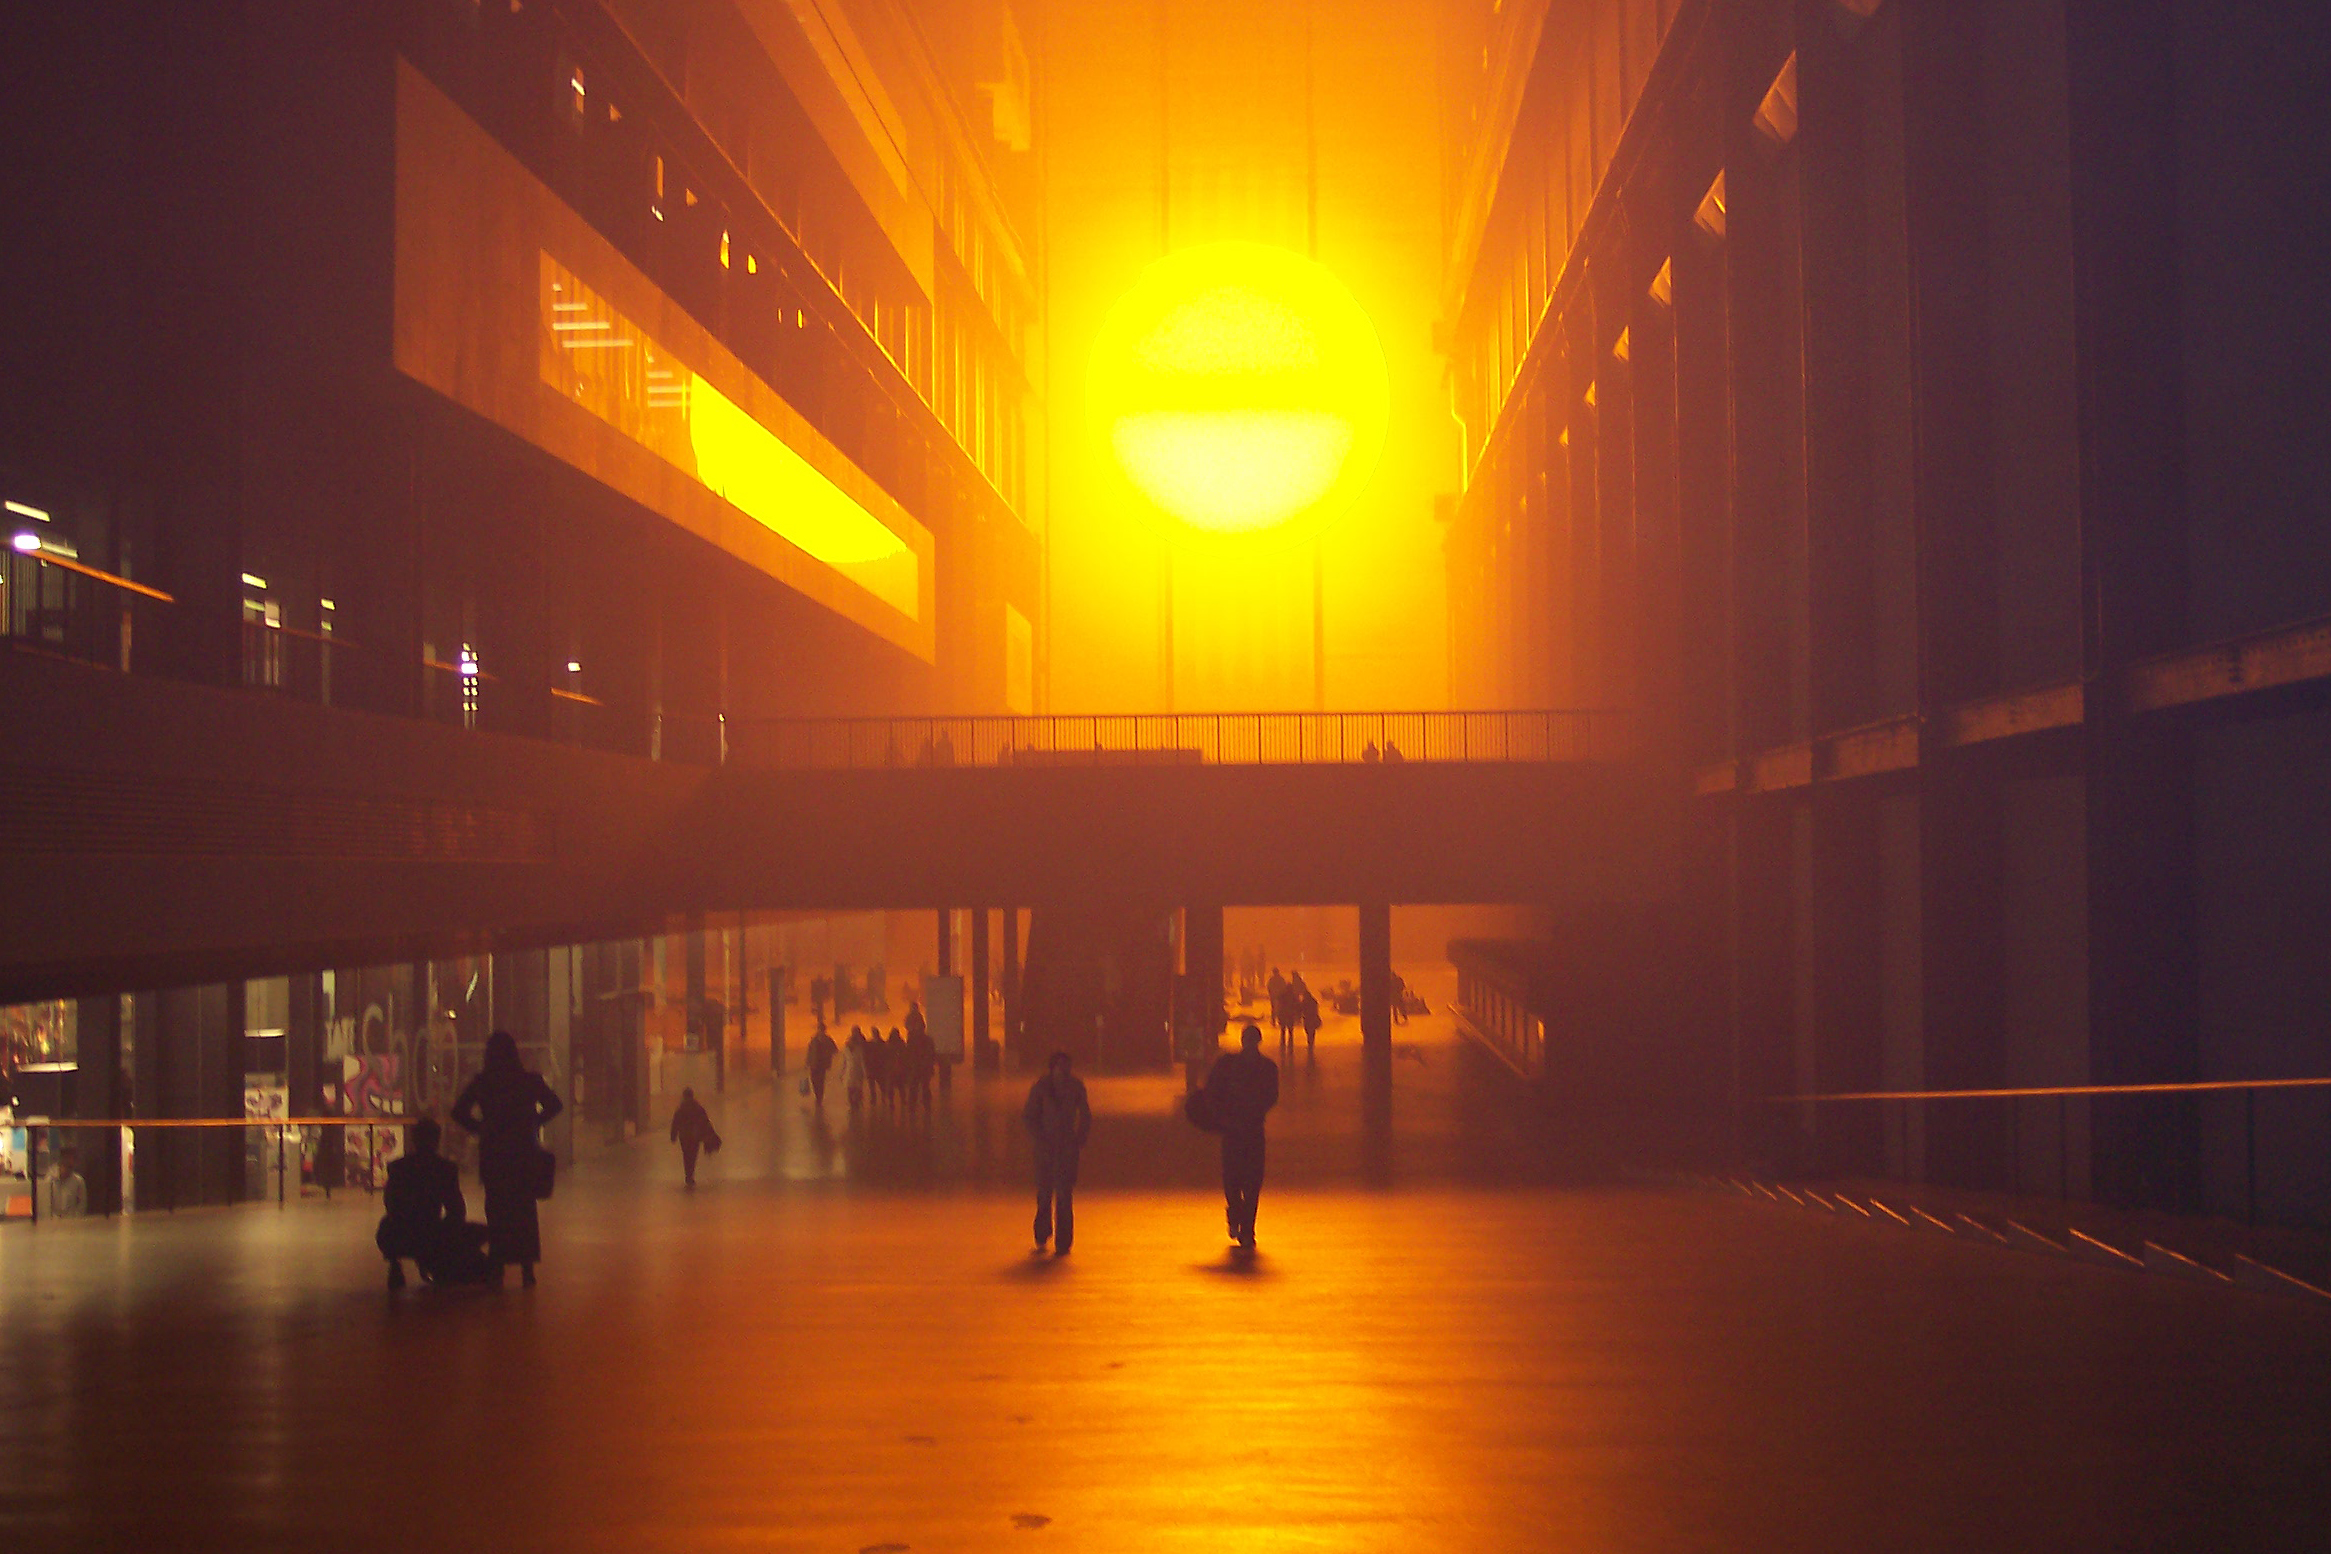 2004_01-08_Olafur-Eliasson_The-Weather-Project-[Tate-Modern]_5_Photograph_James-Bulley.jpg